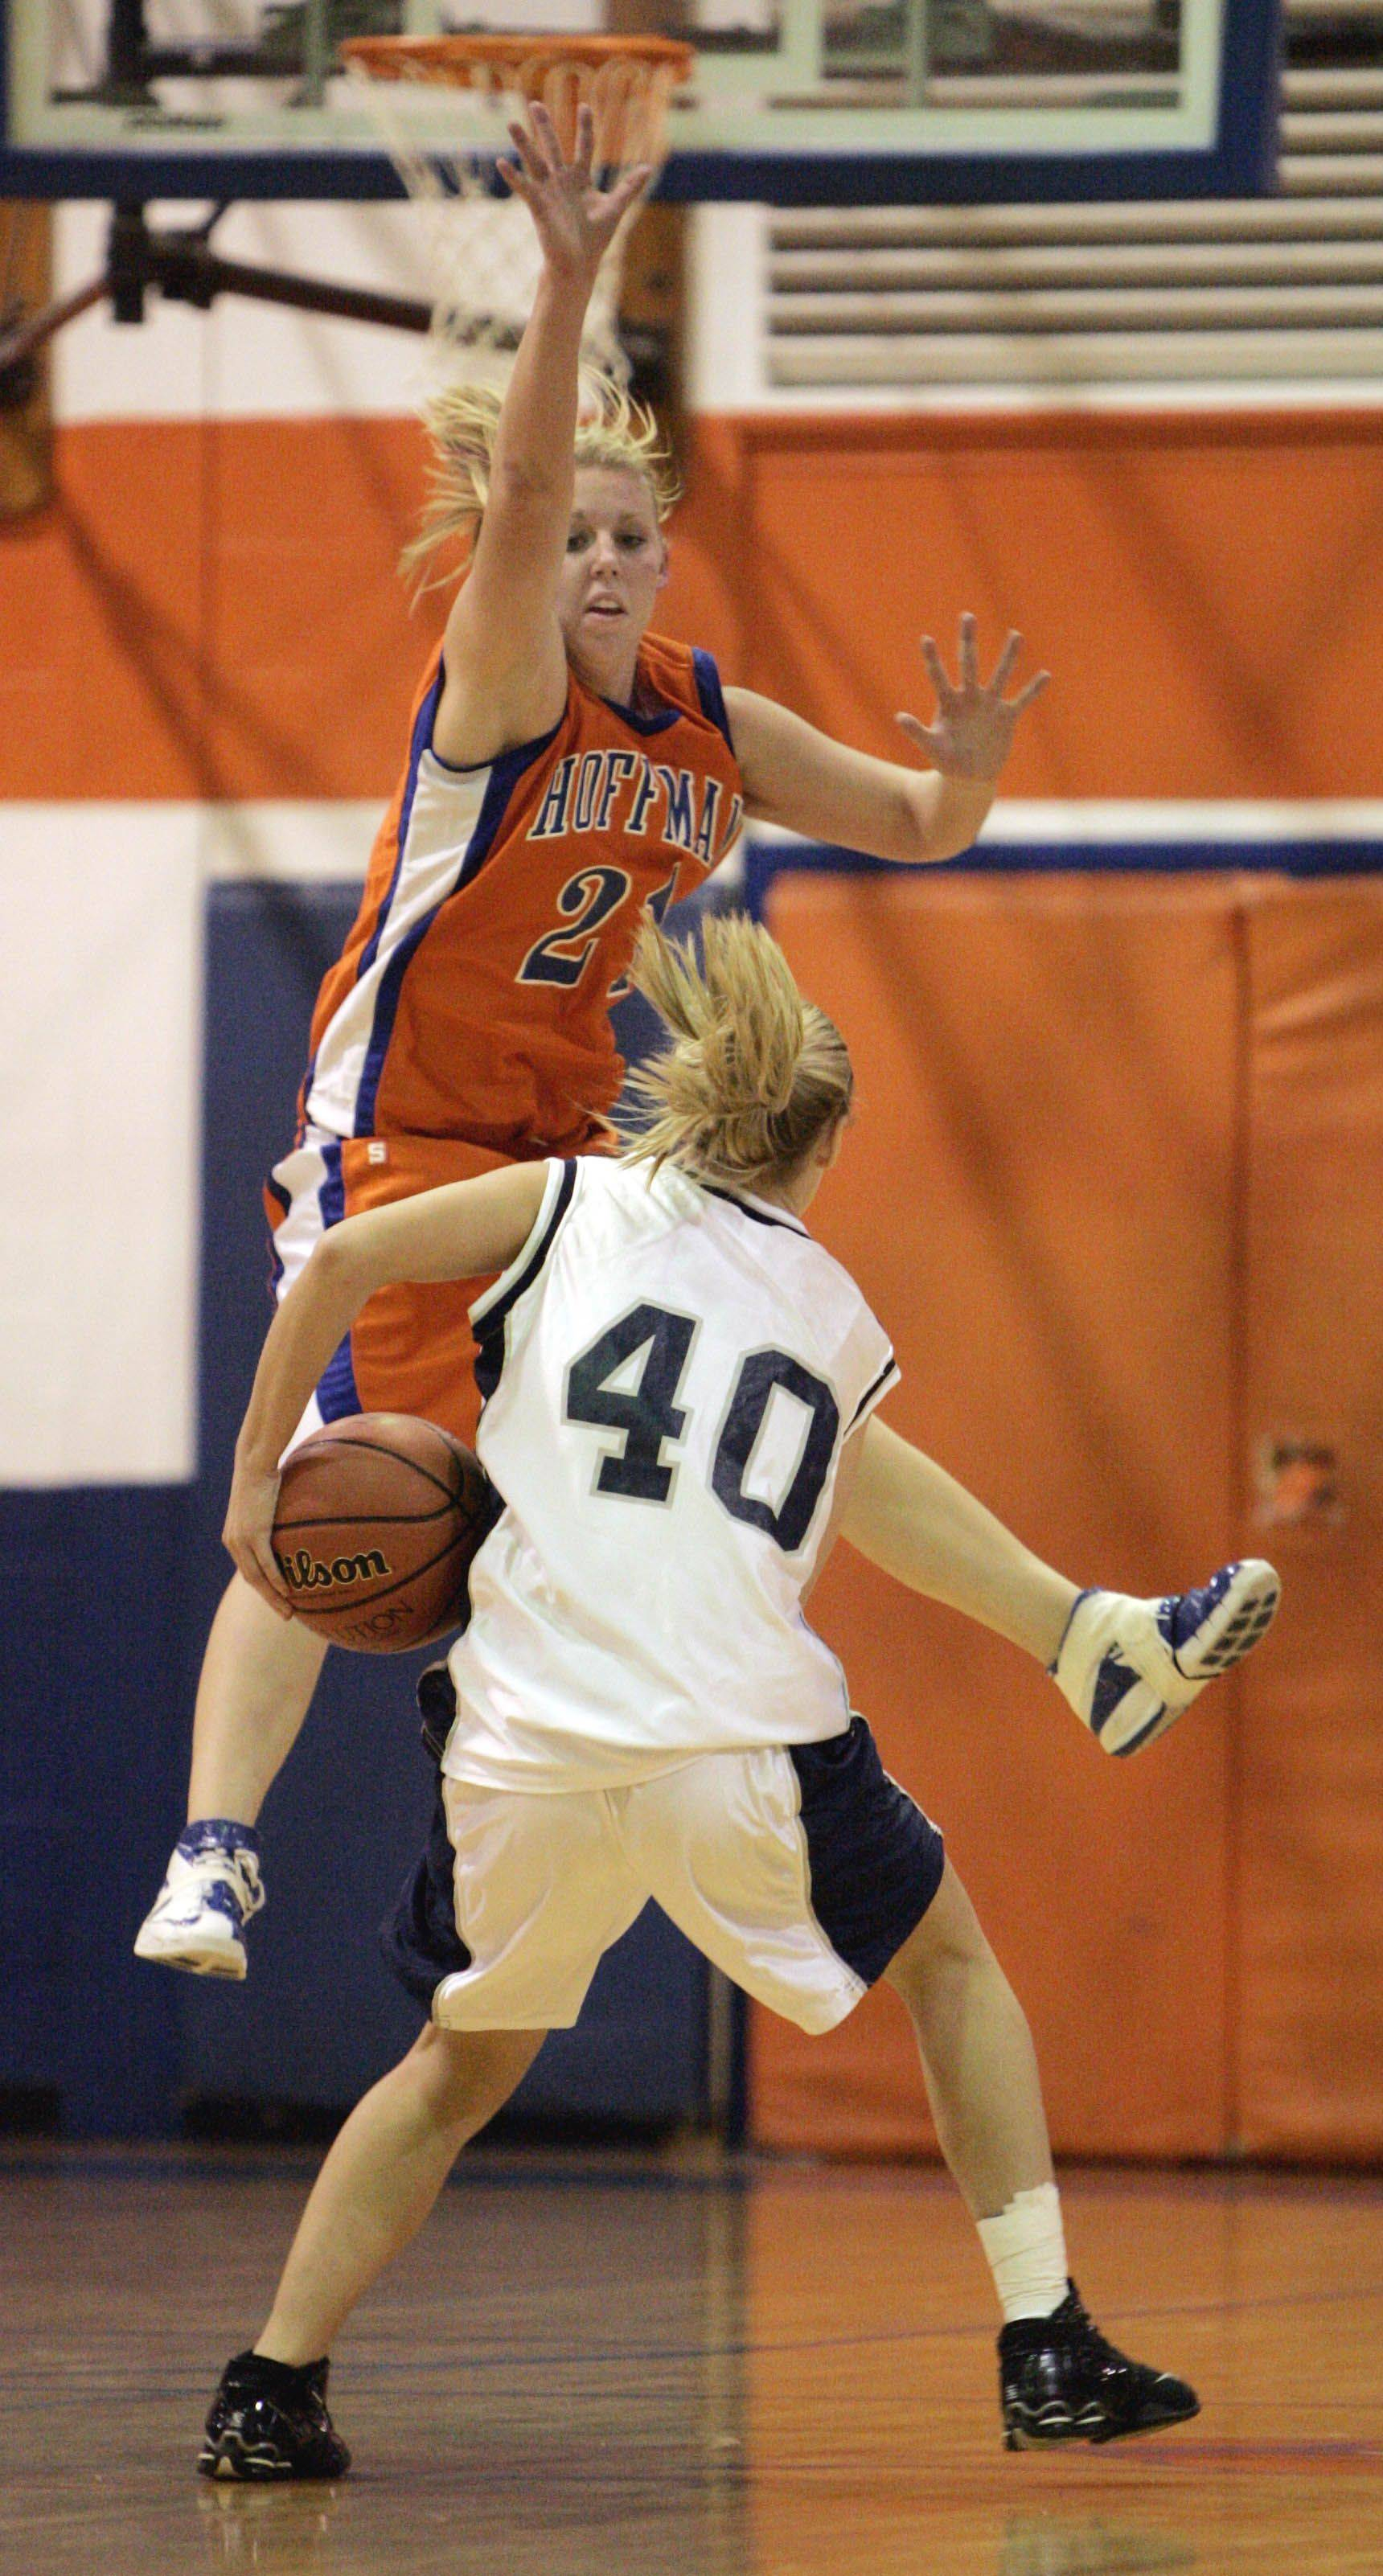 ED LEE/elee@dailyherald.com Hoffman Estates 21 Alex Wulbecker with the tight defense on Lake